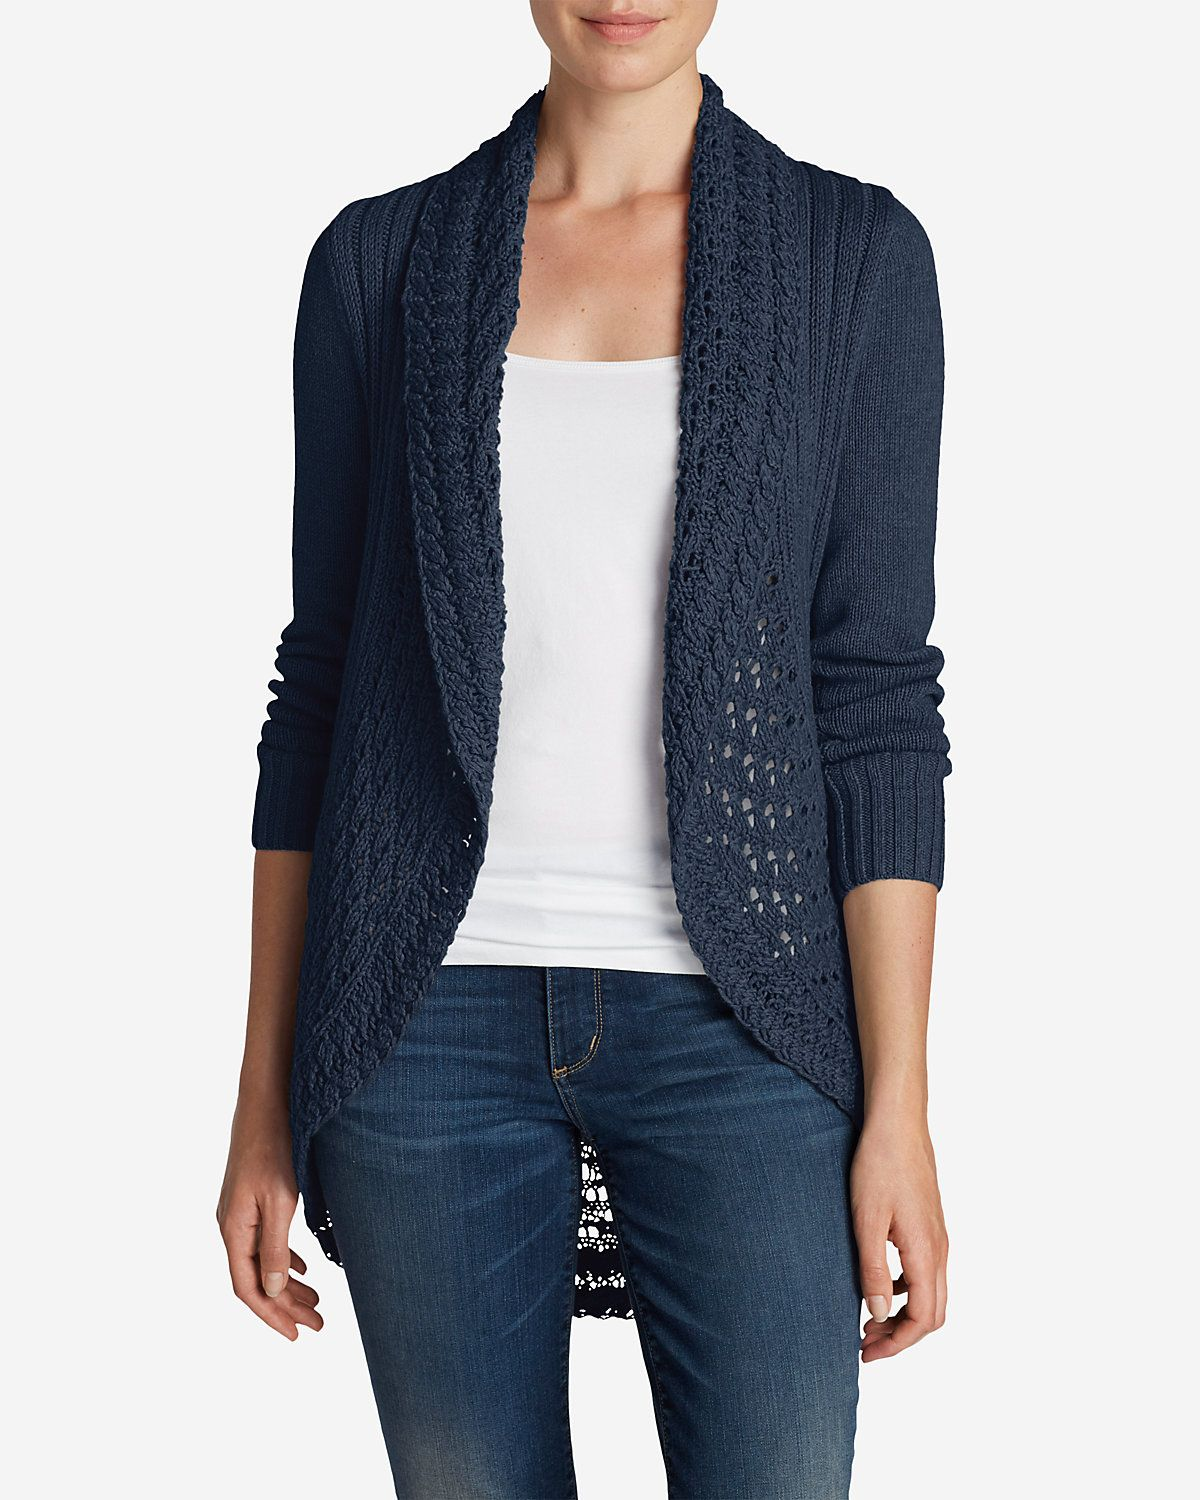 Womens Navy Blue Cardigan Sweater Baggage Clothing